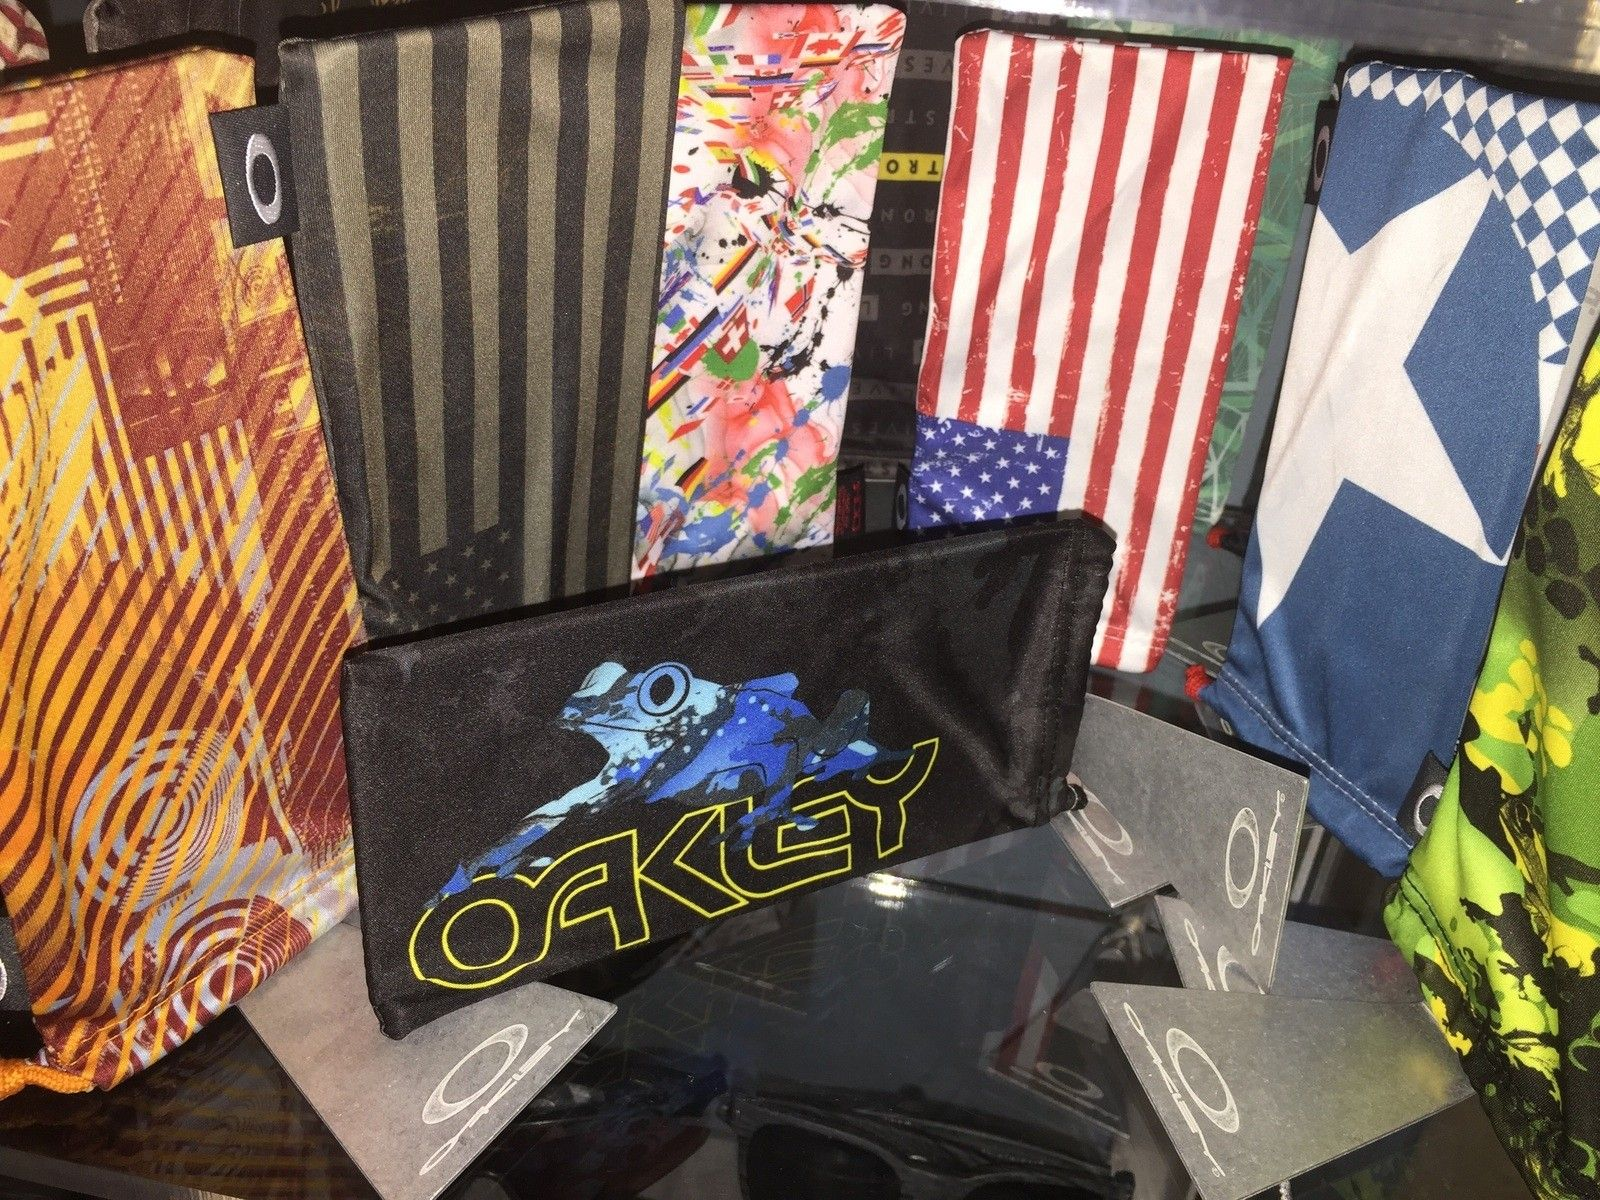 Oakley metal base logo  microfiber bag holder/display can put side ways too - image.jpg